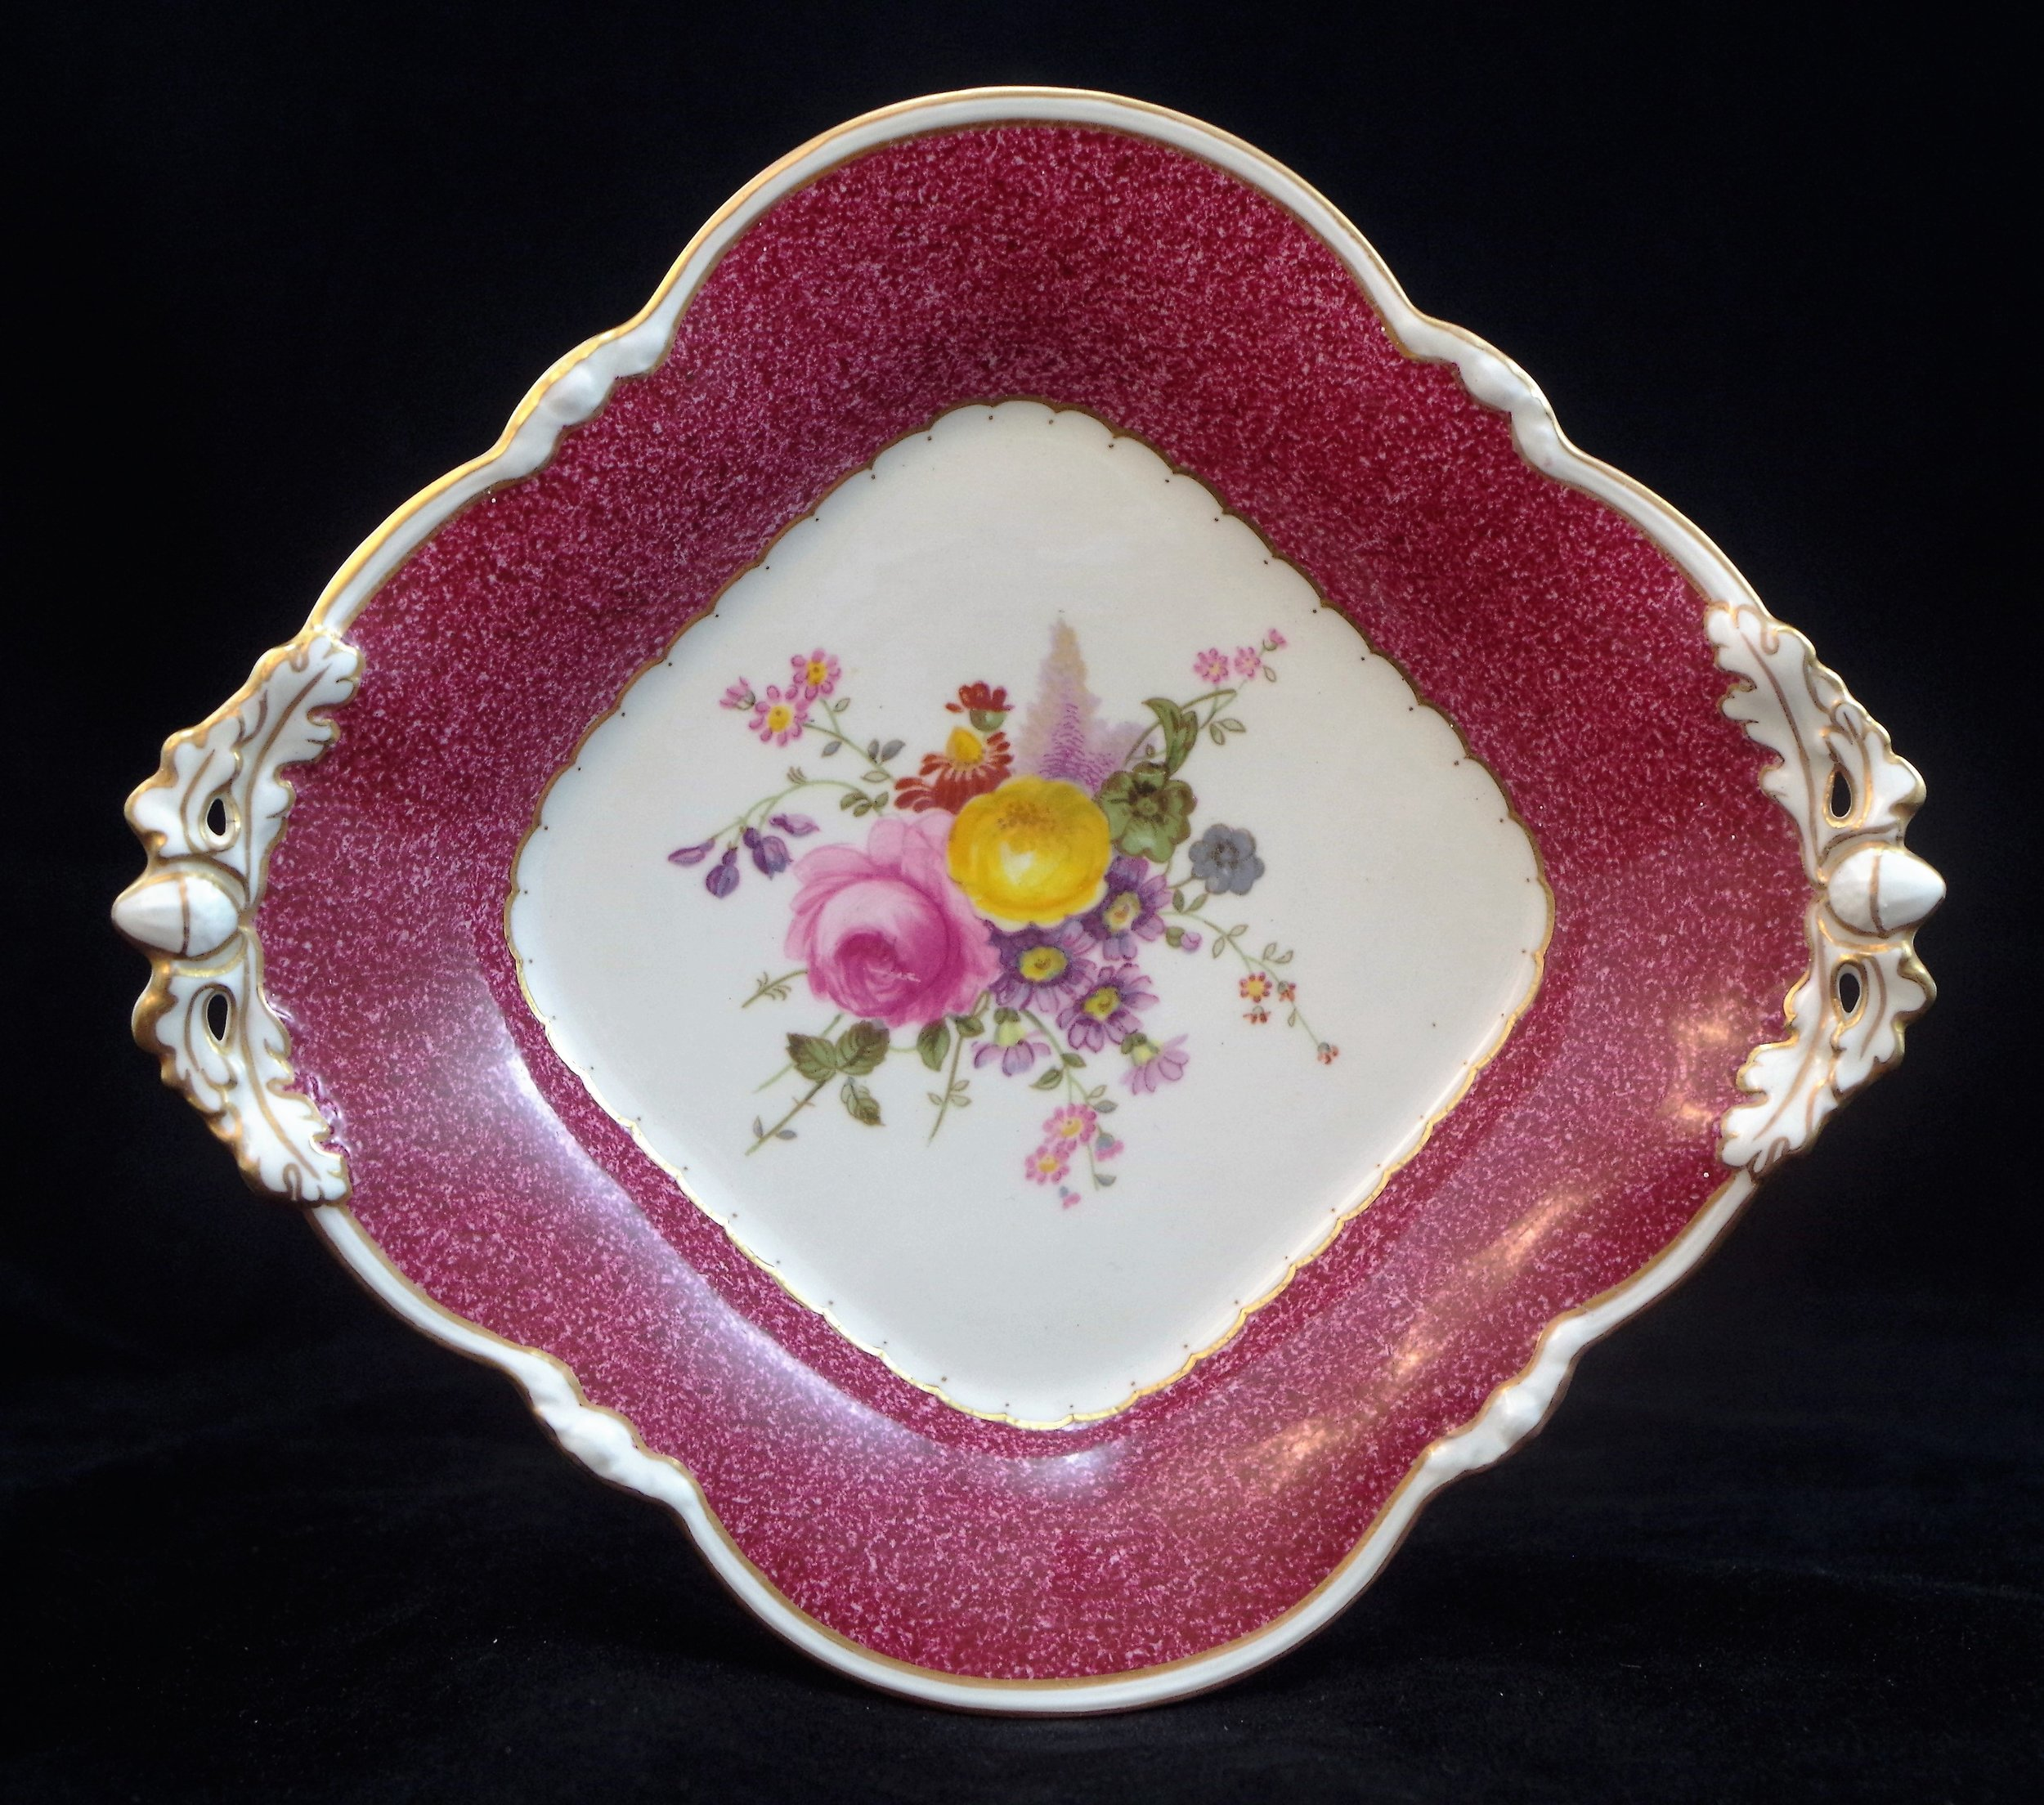 royal-crown-derby-cake-basket-1685-square-posie-with-powdered-maroon-ground